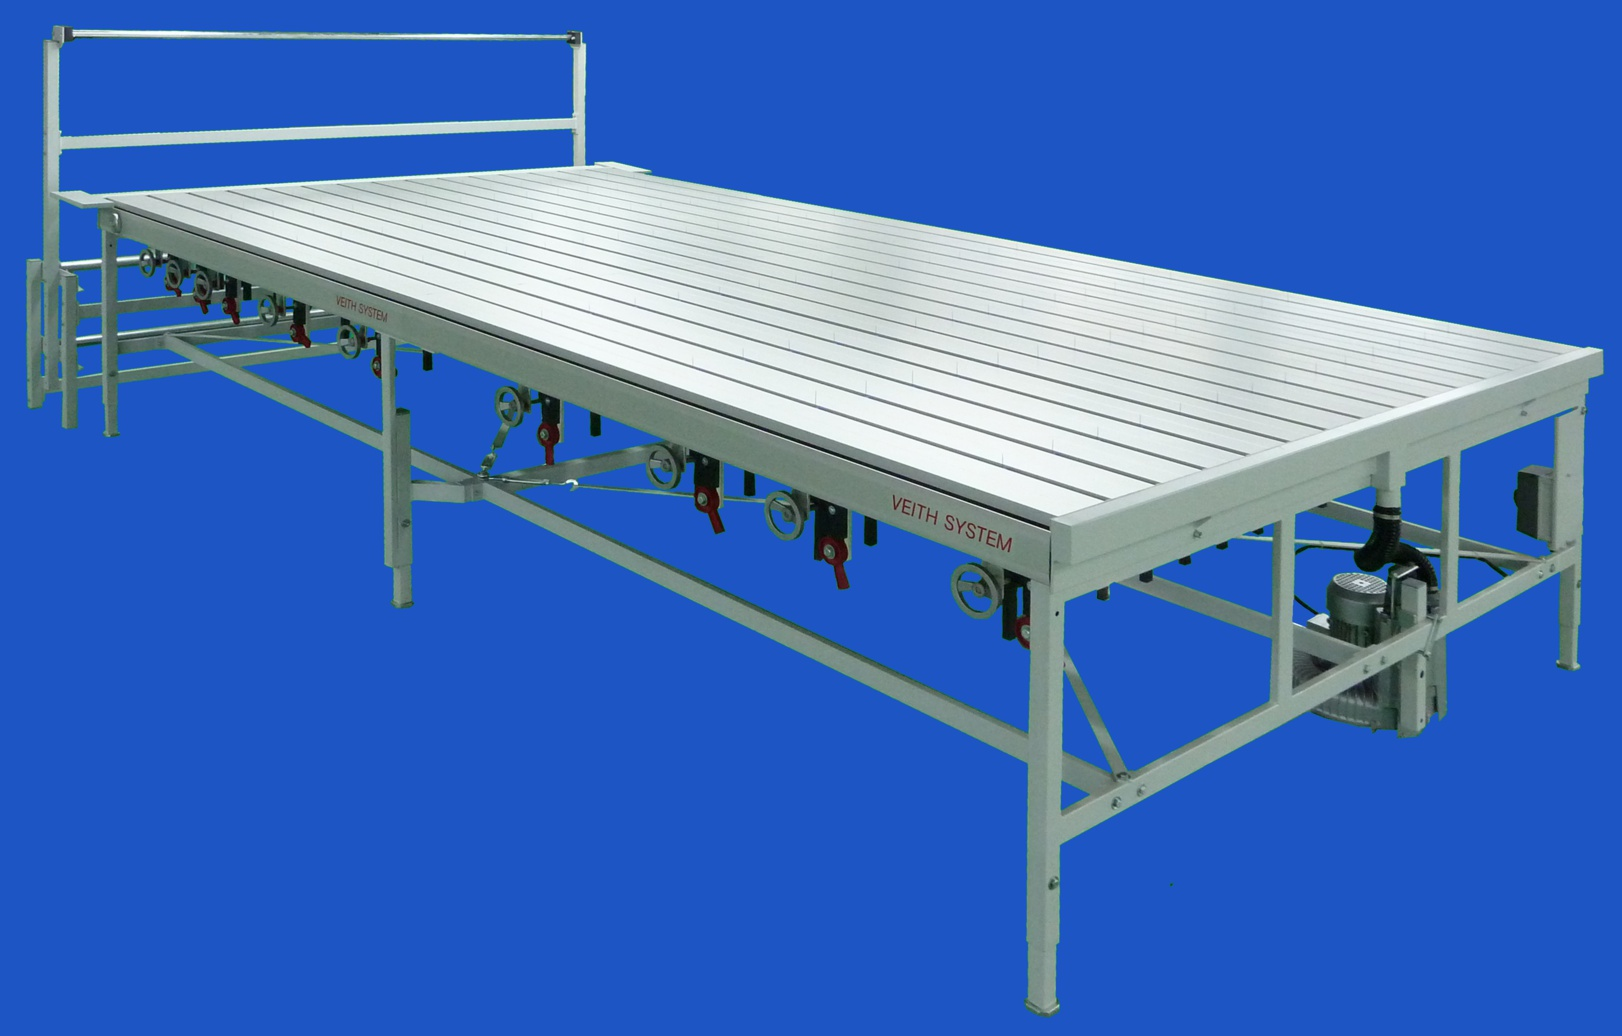 Veith Pin Table - SKT-type